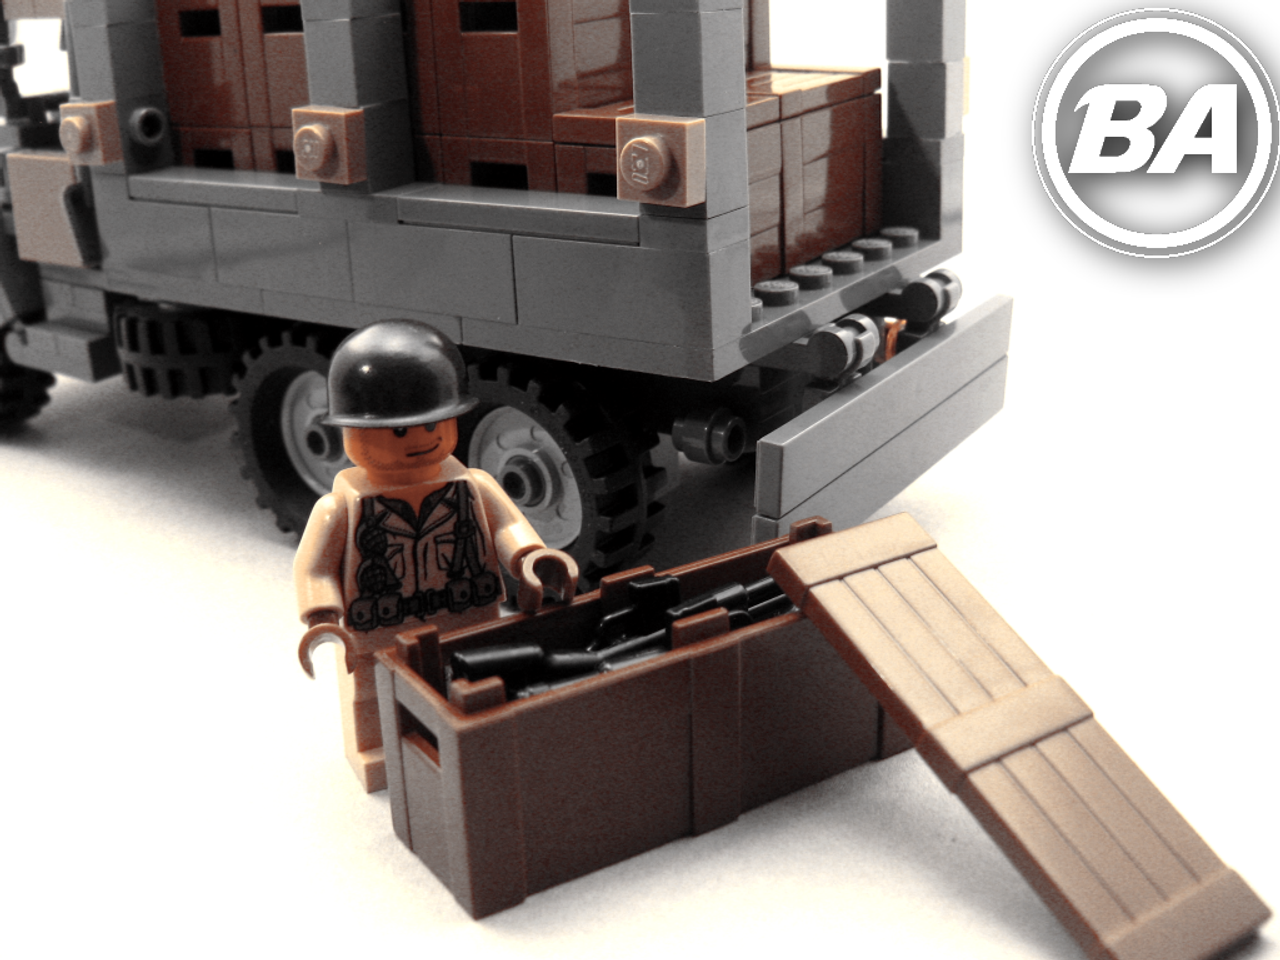 BA Crates stacked in a Brickmania CCKW!